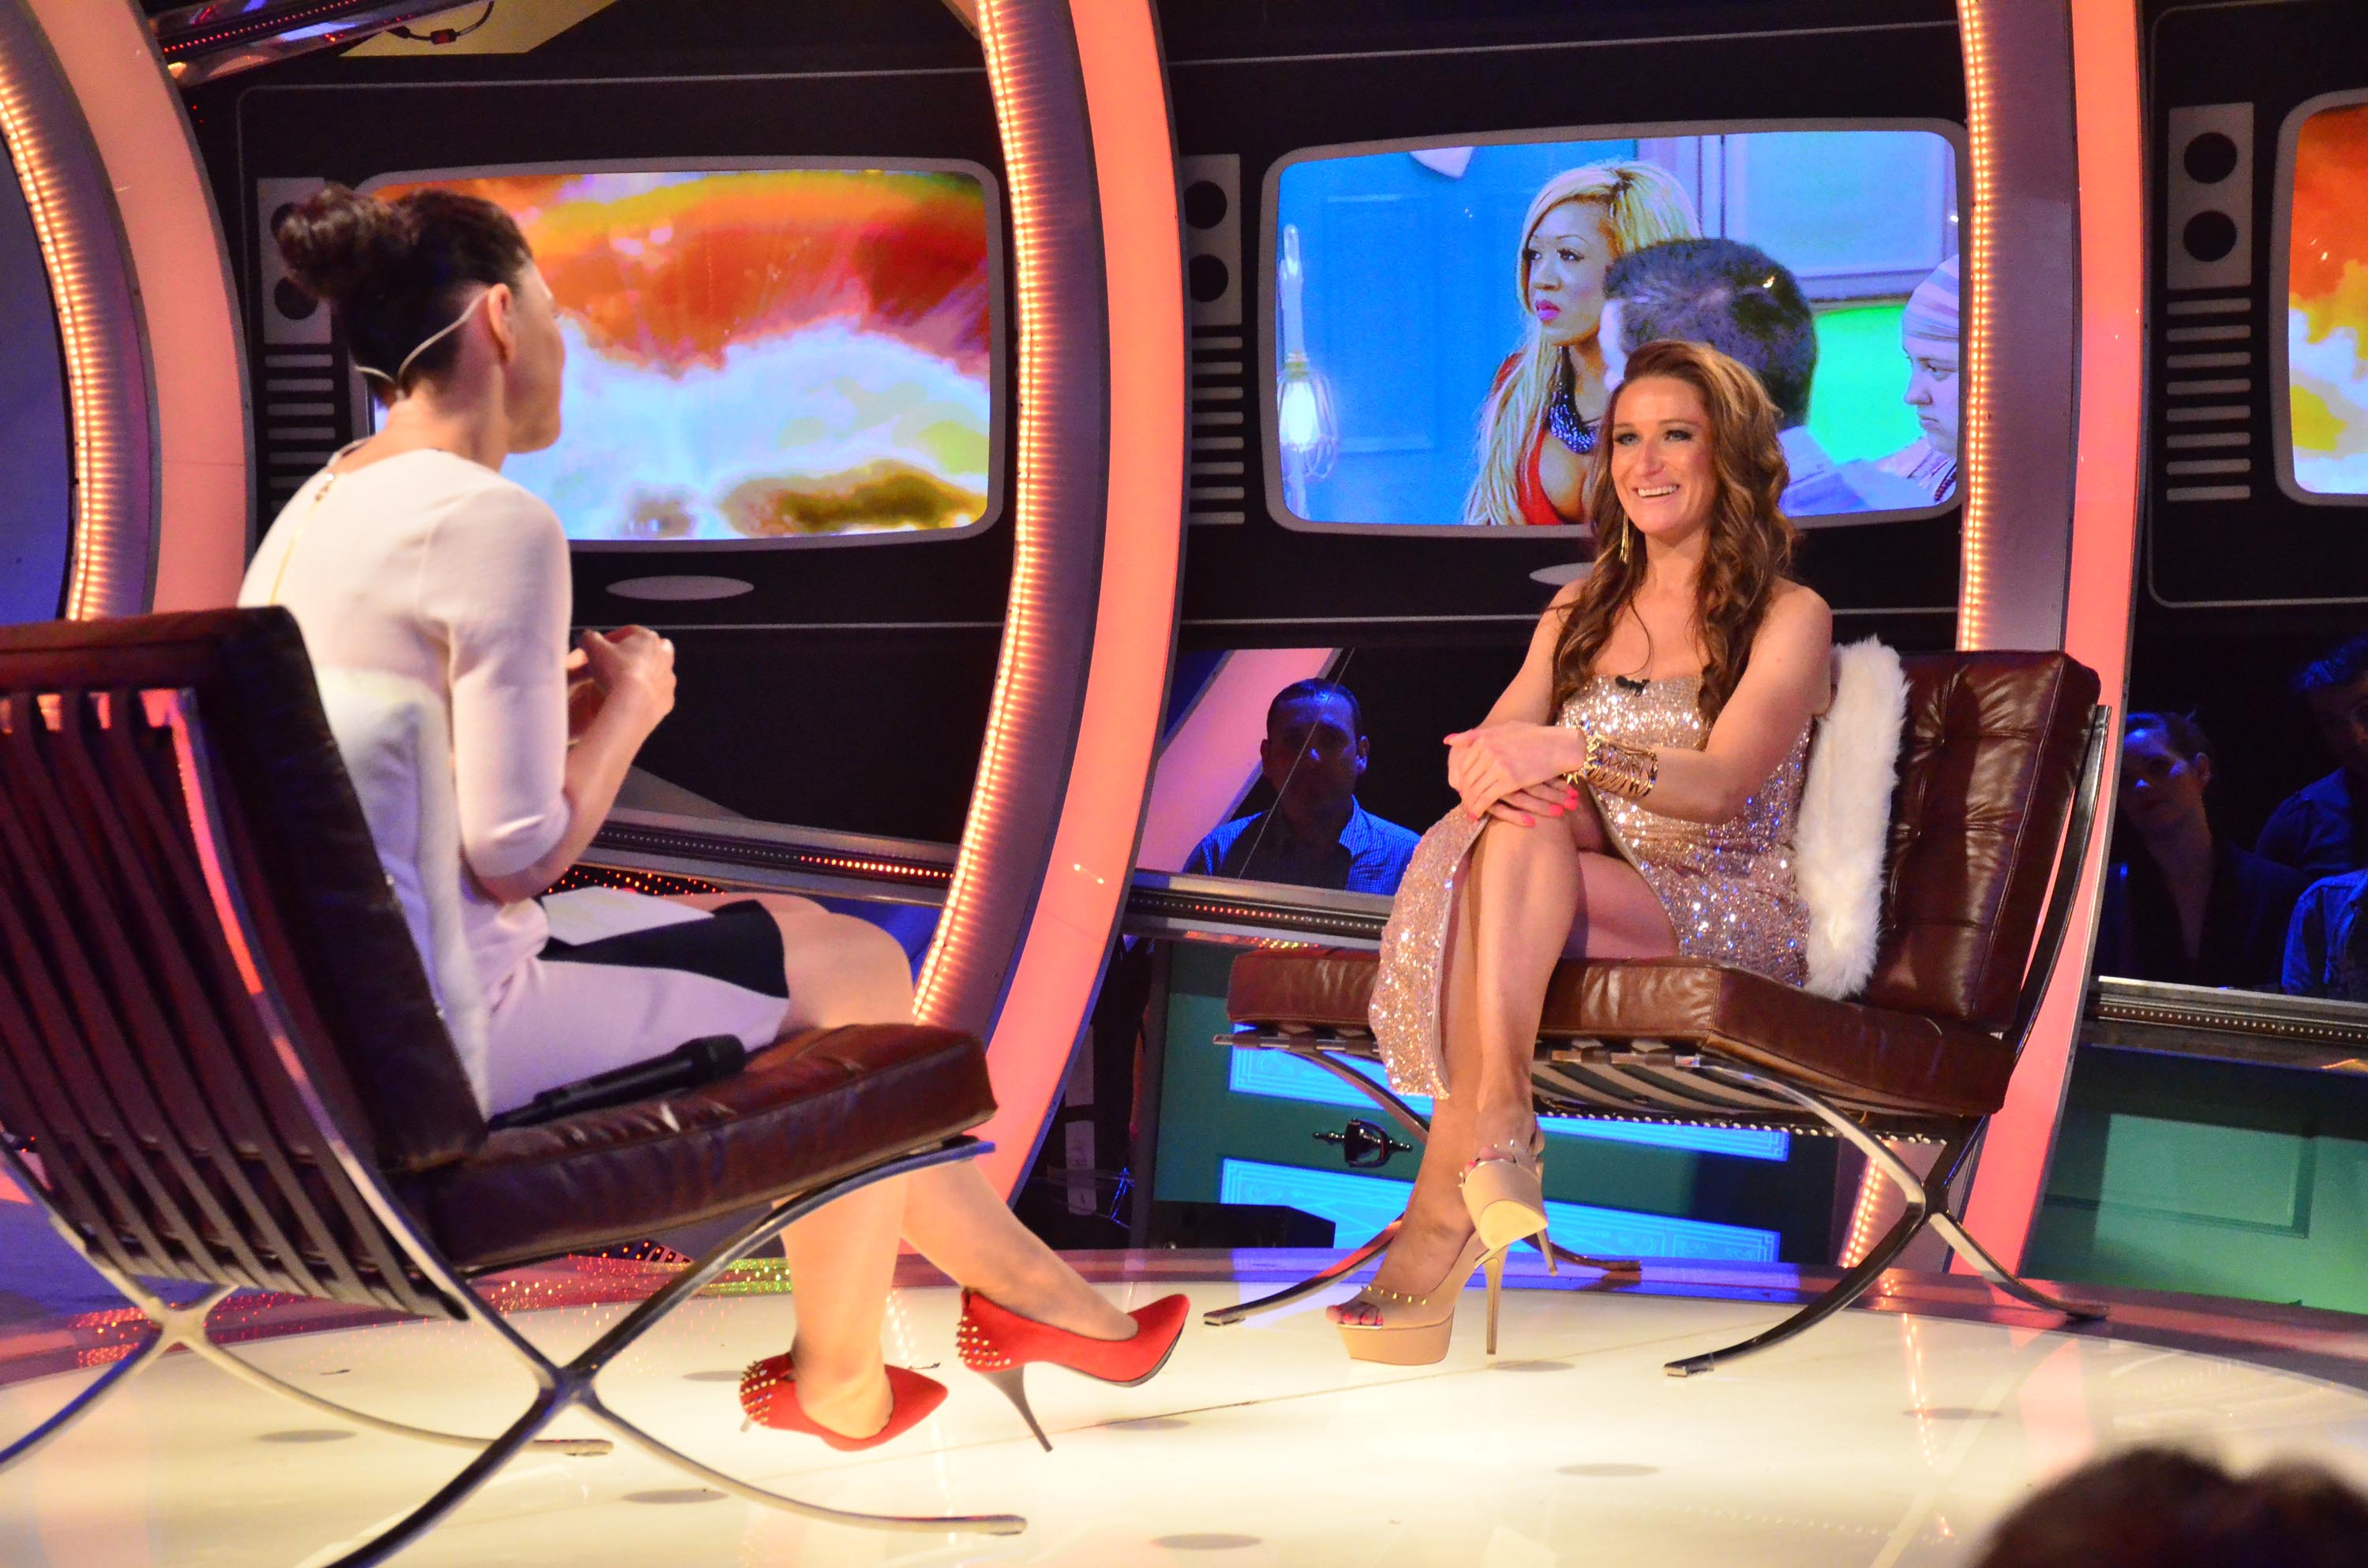 Jemima evicted from Big Brother